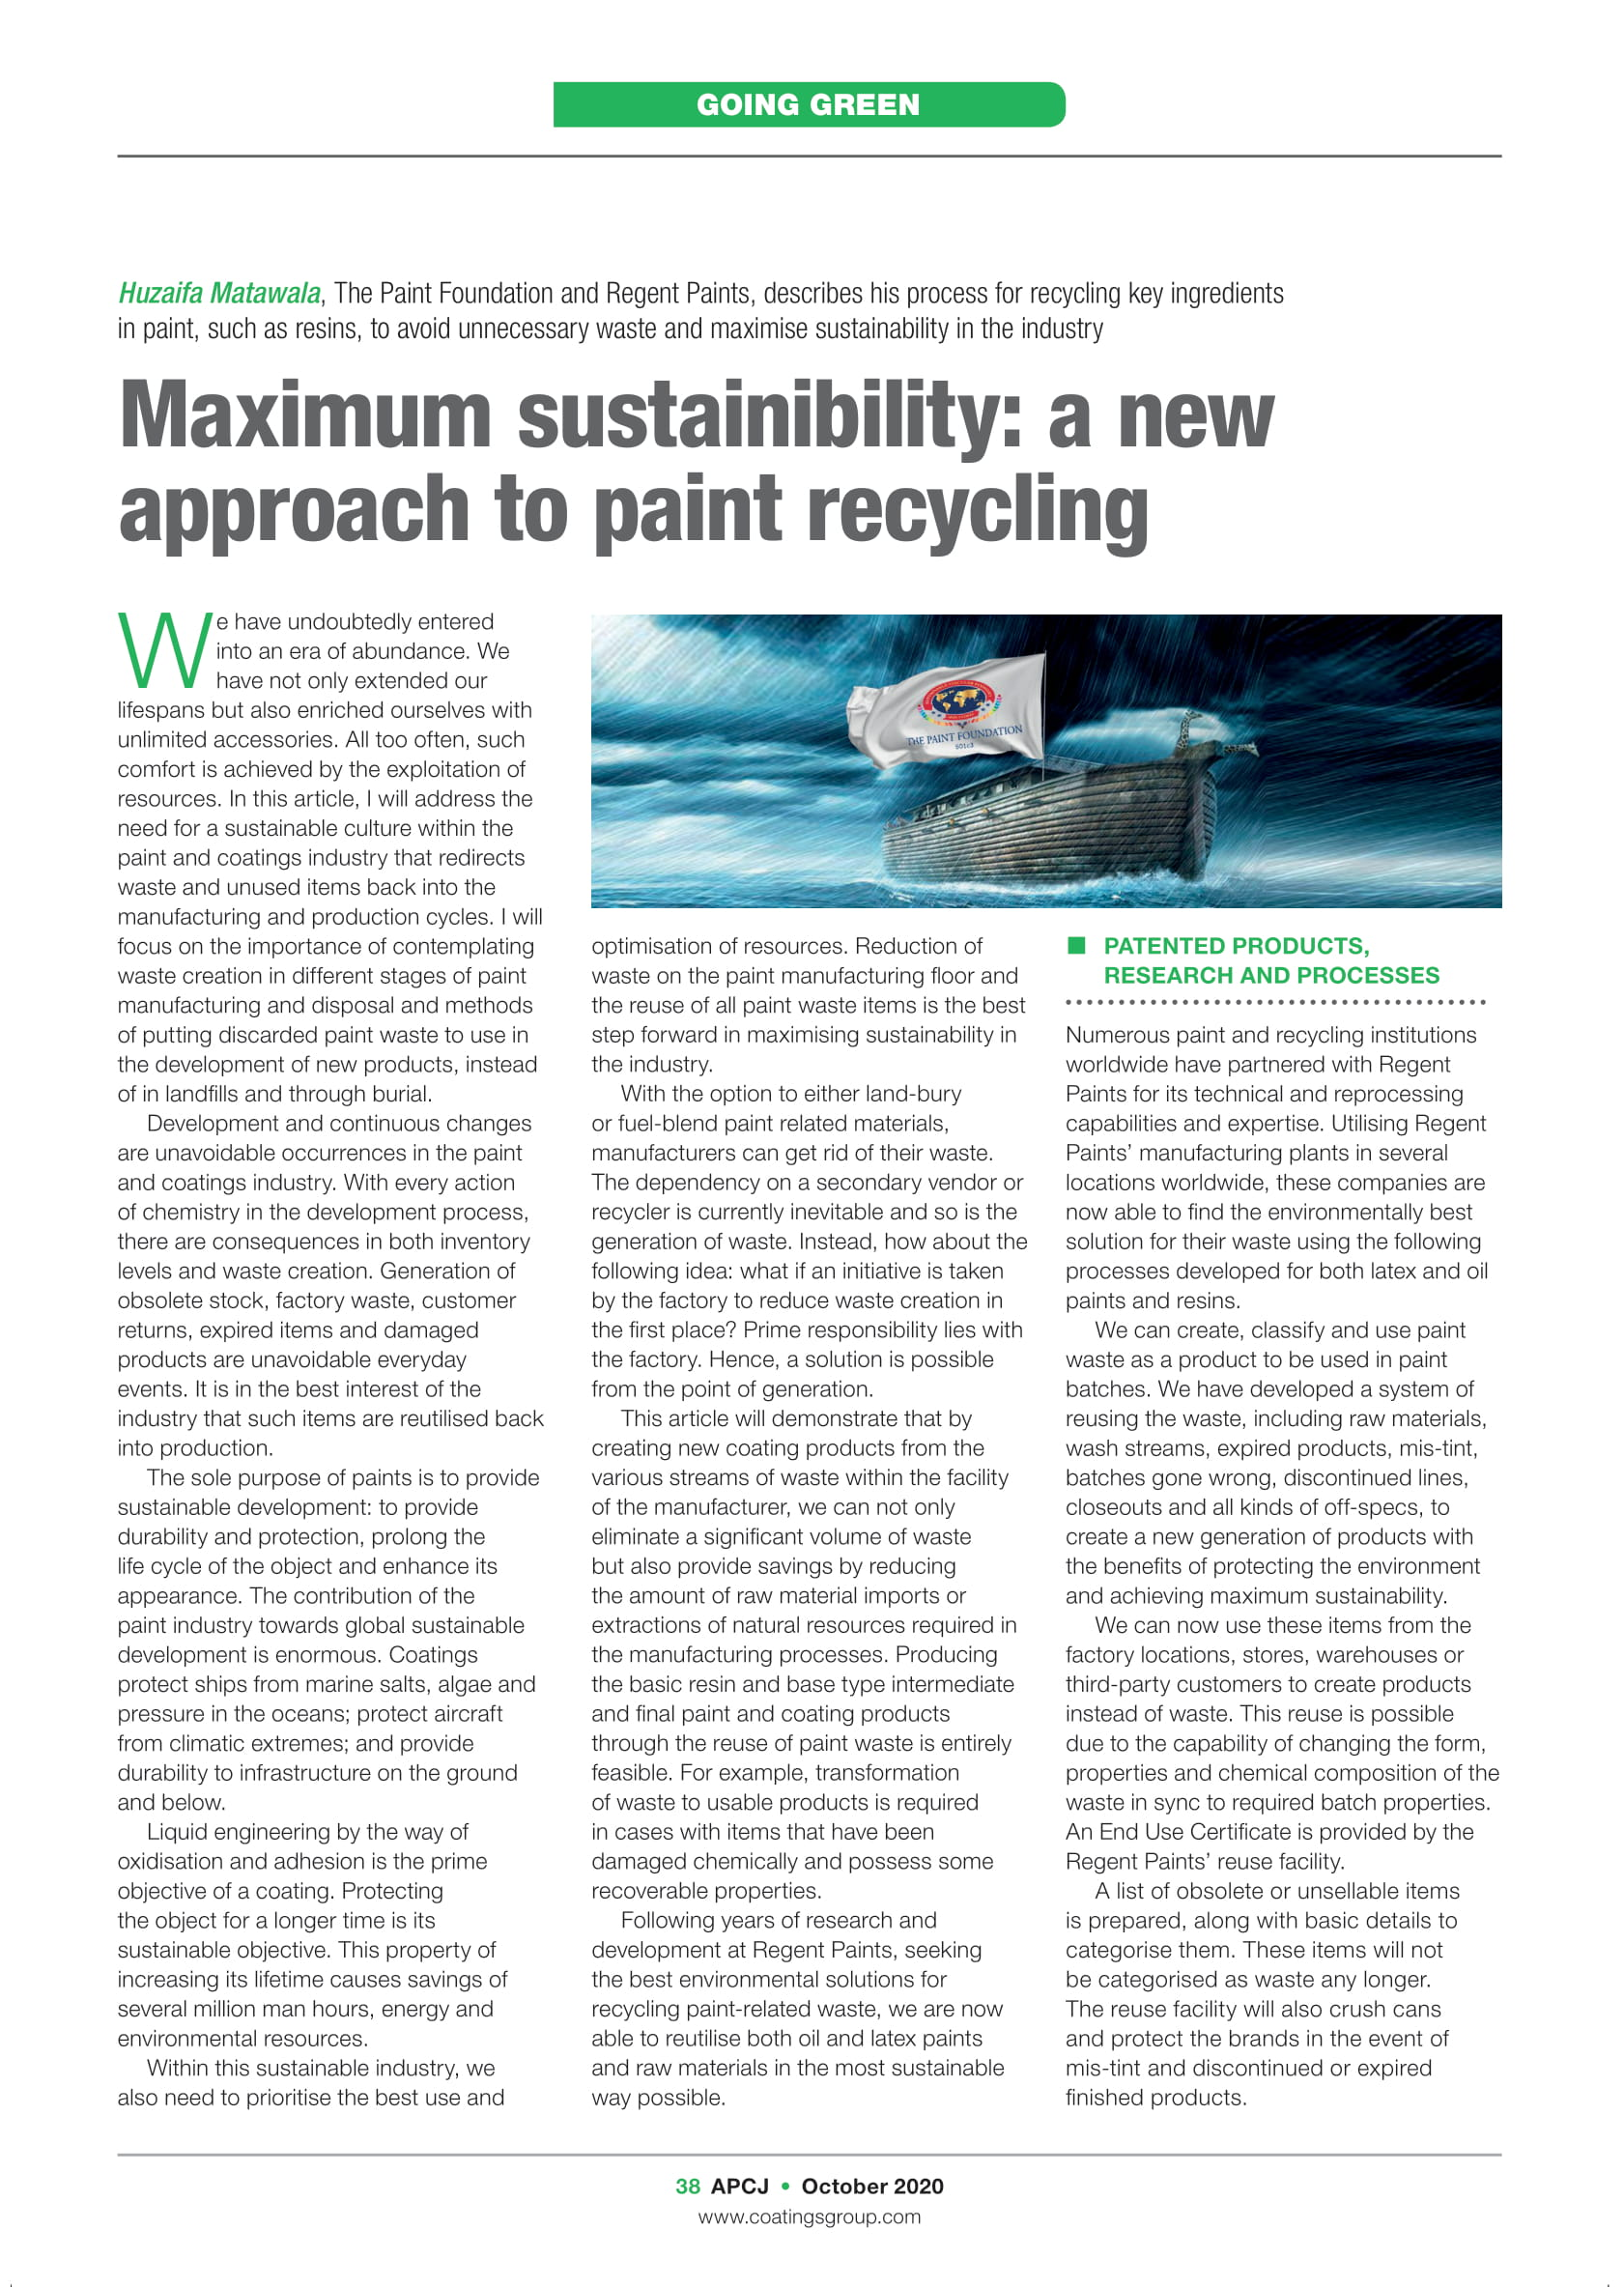 On Maximum sustainability - A new approach to Paint Recycling